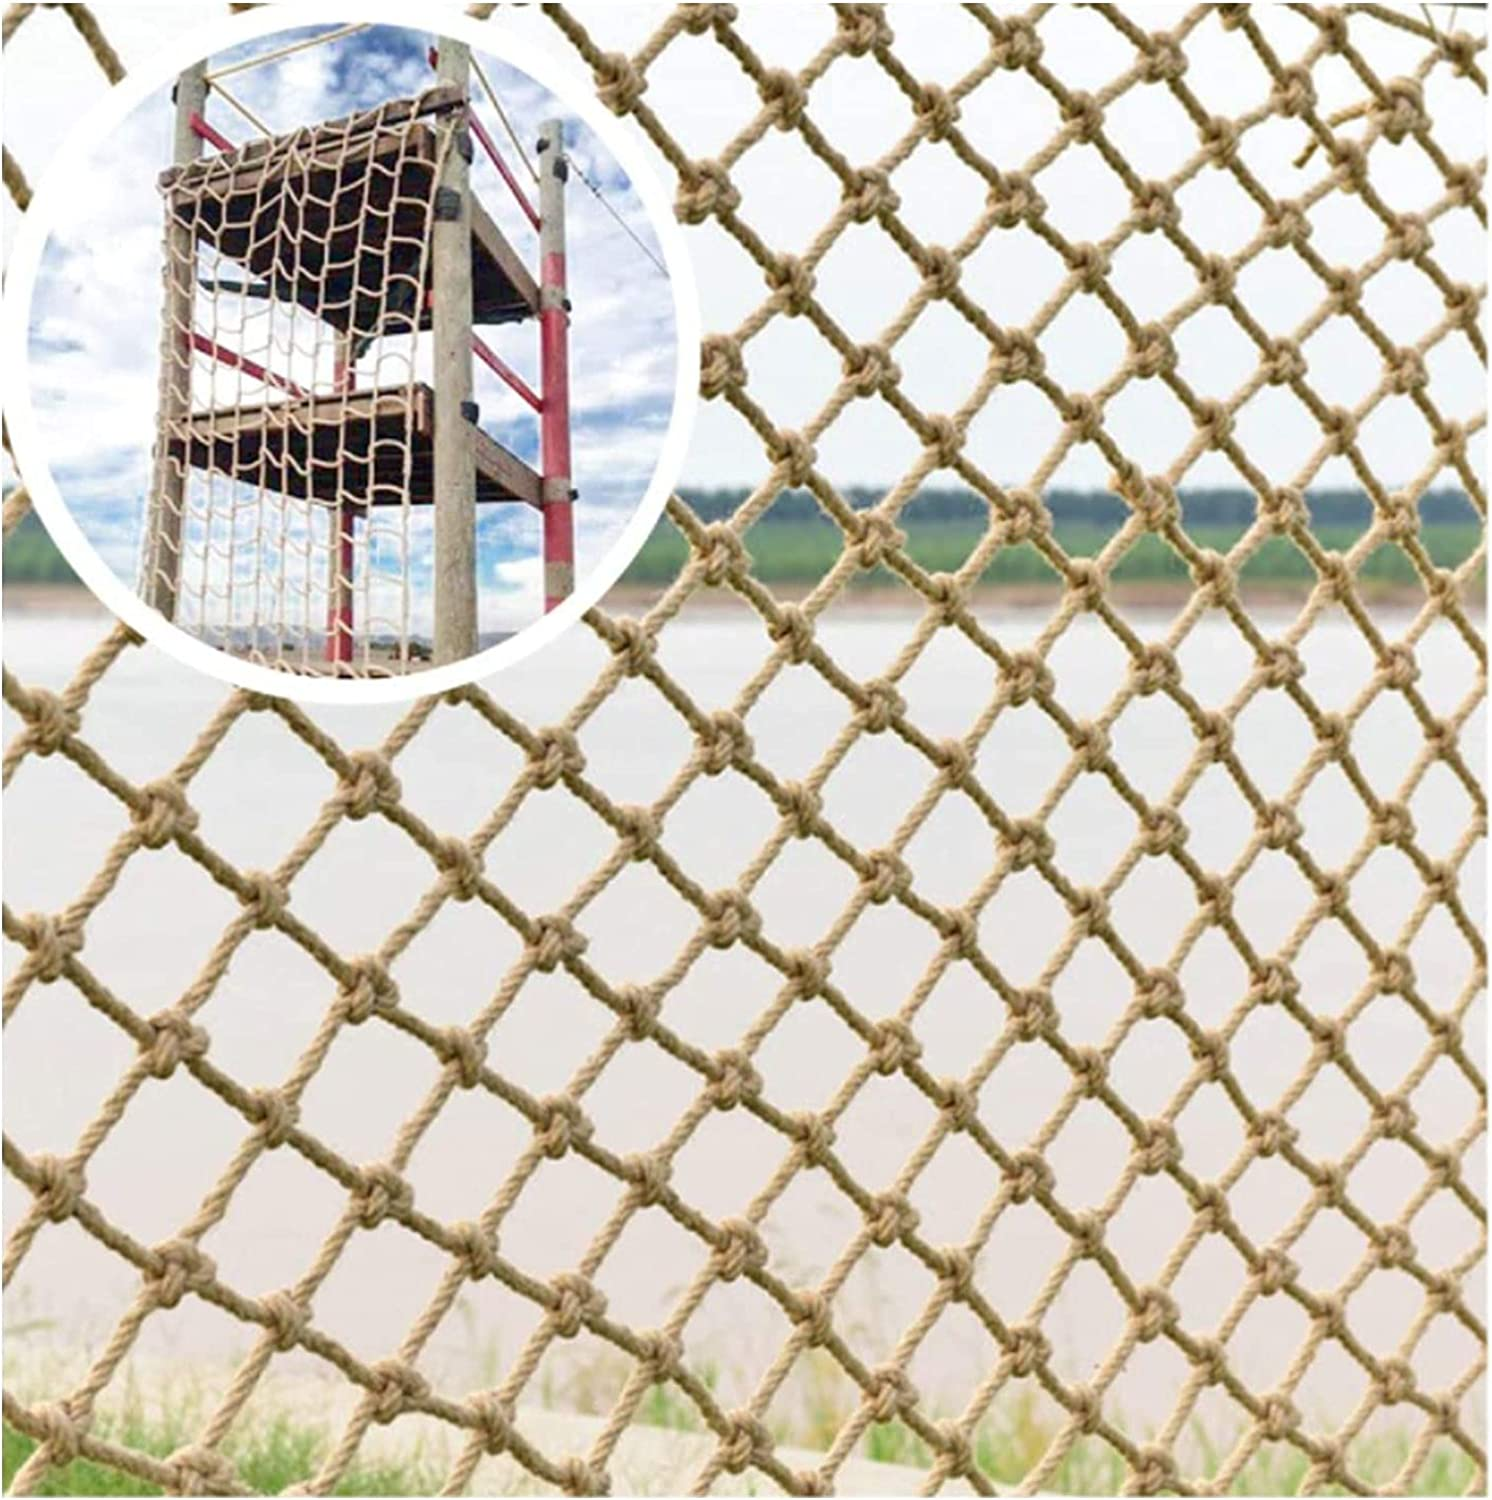 Climbing Net for Kids Safety Cargo Duty Rope Heavy Hemp Max 46% OFF Limited time cheap sale